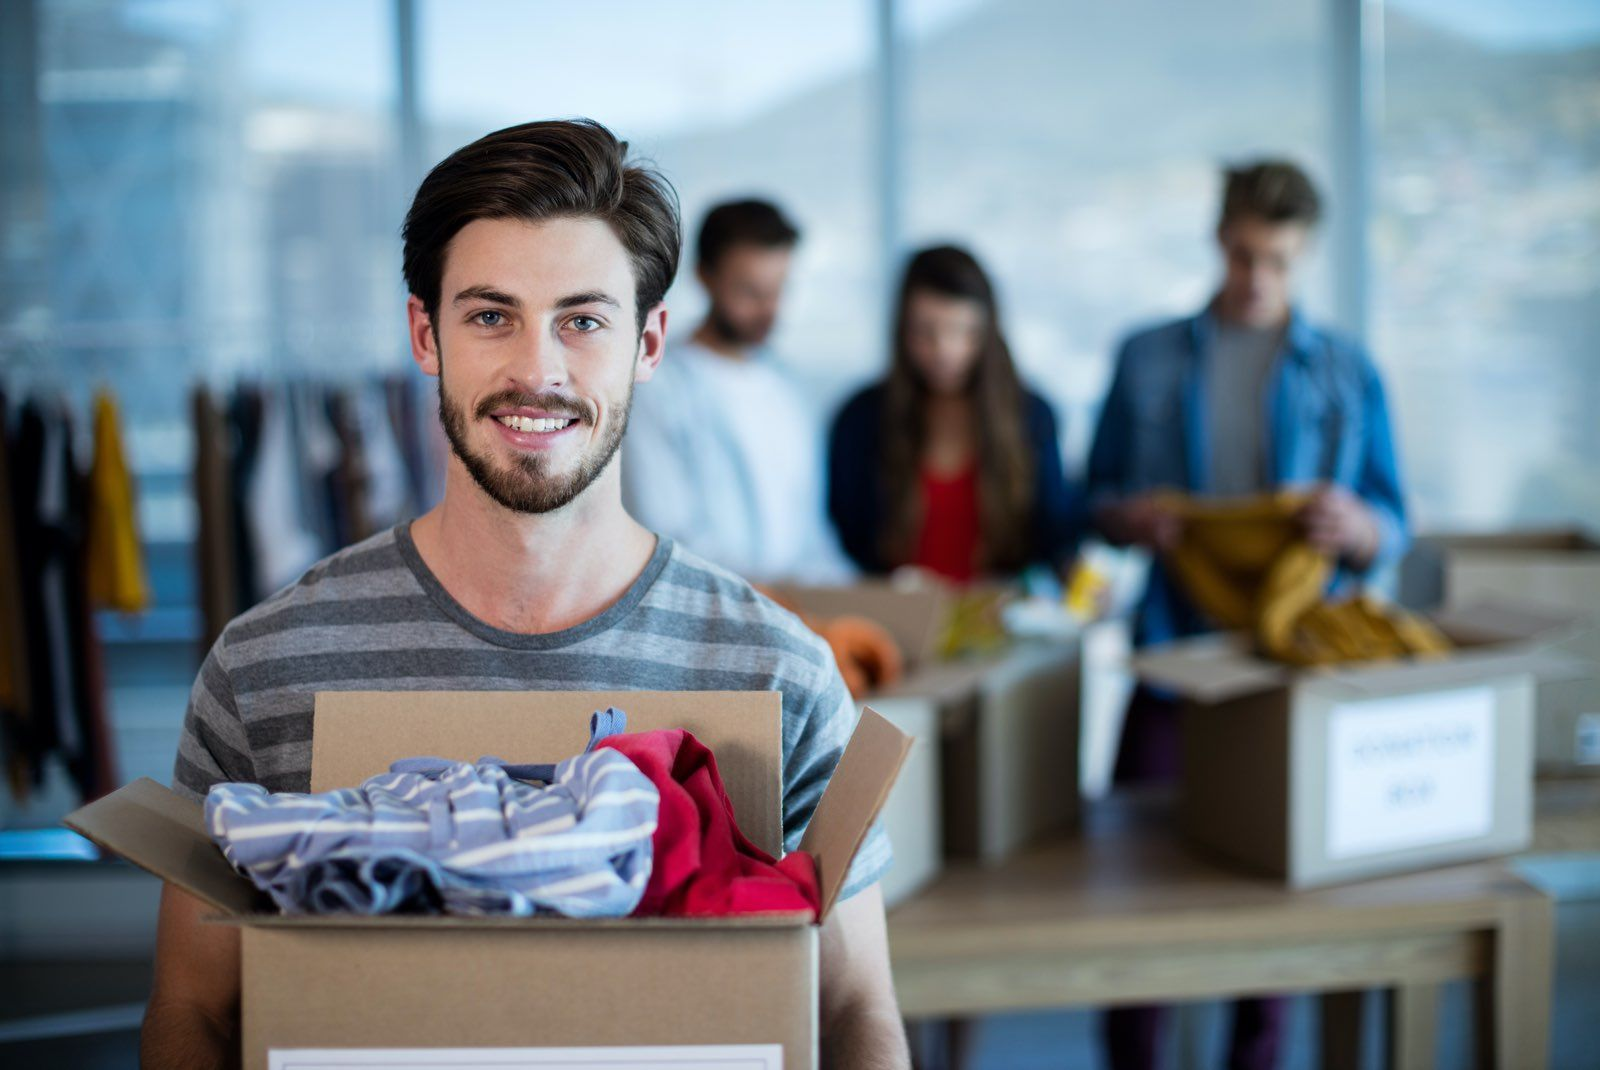 A charitable donation tax deduction can lower your tax